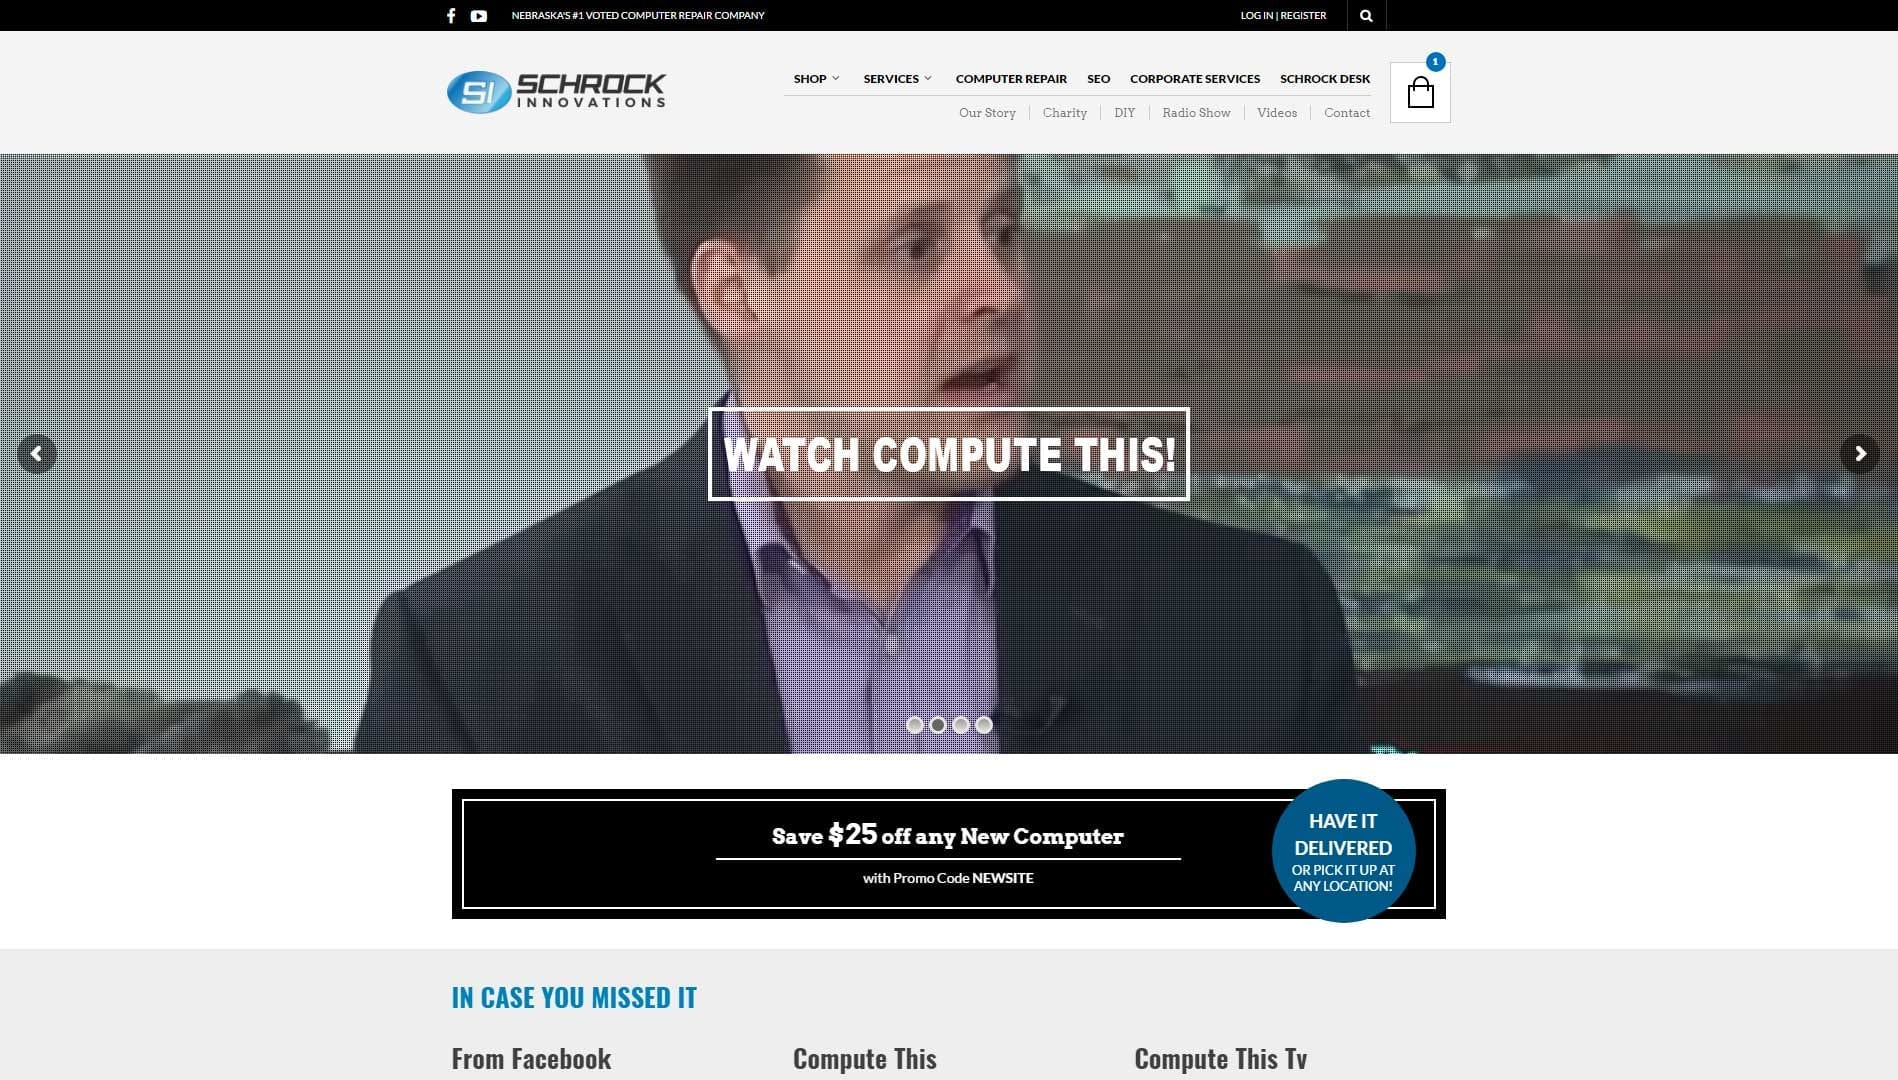 schrock Interactive website design